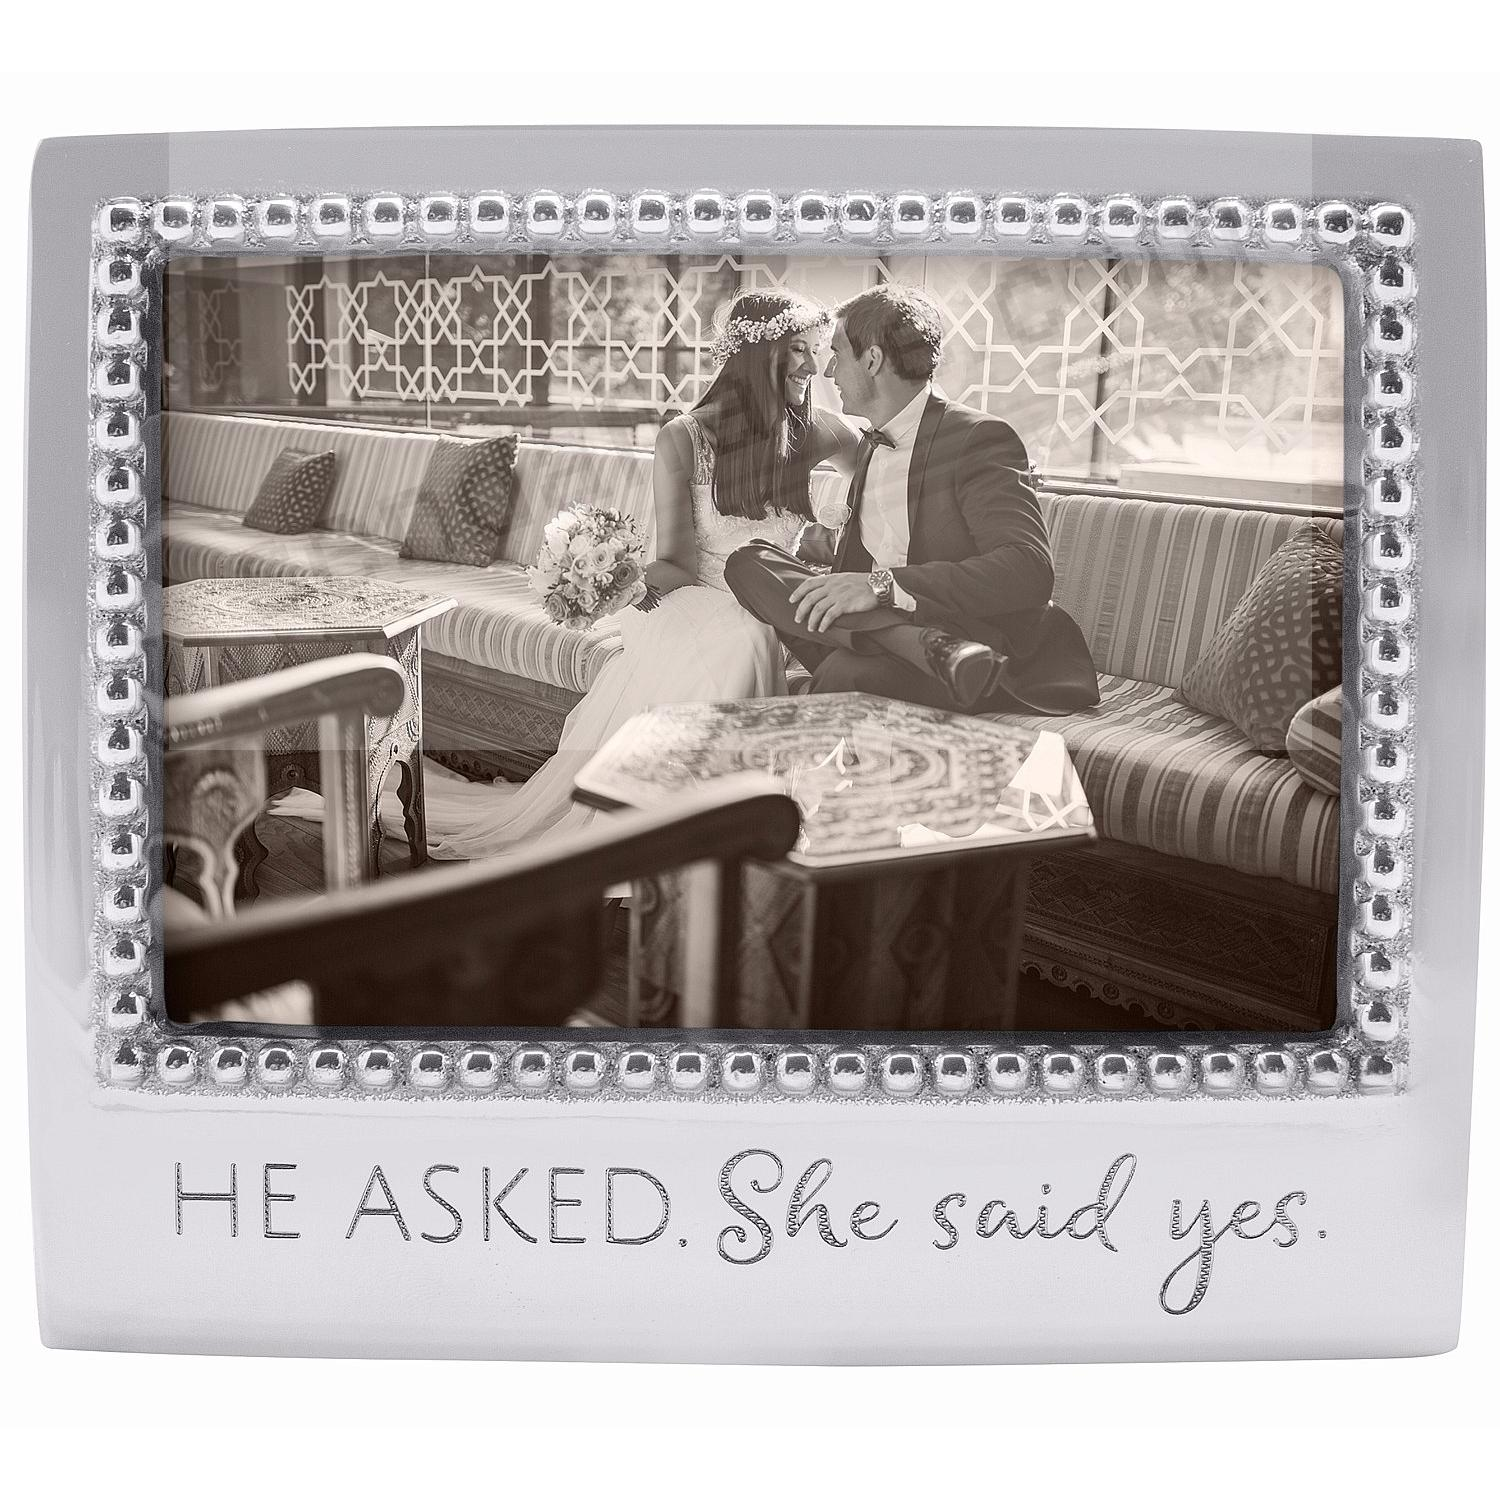 The HE ASKED. SHE SAID YES. Statement frame crafted by Mariposa®